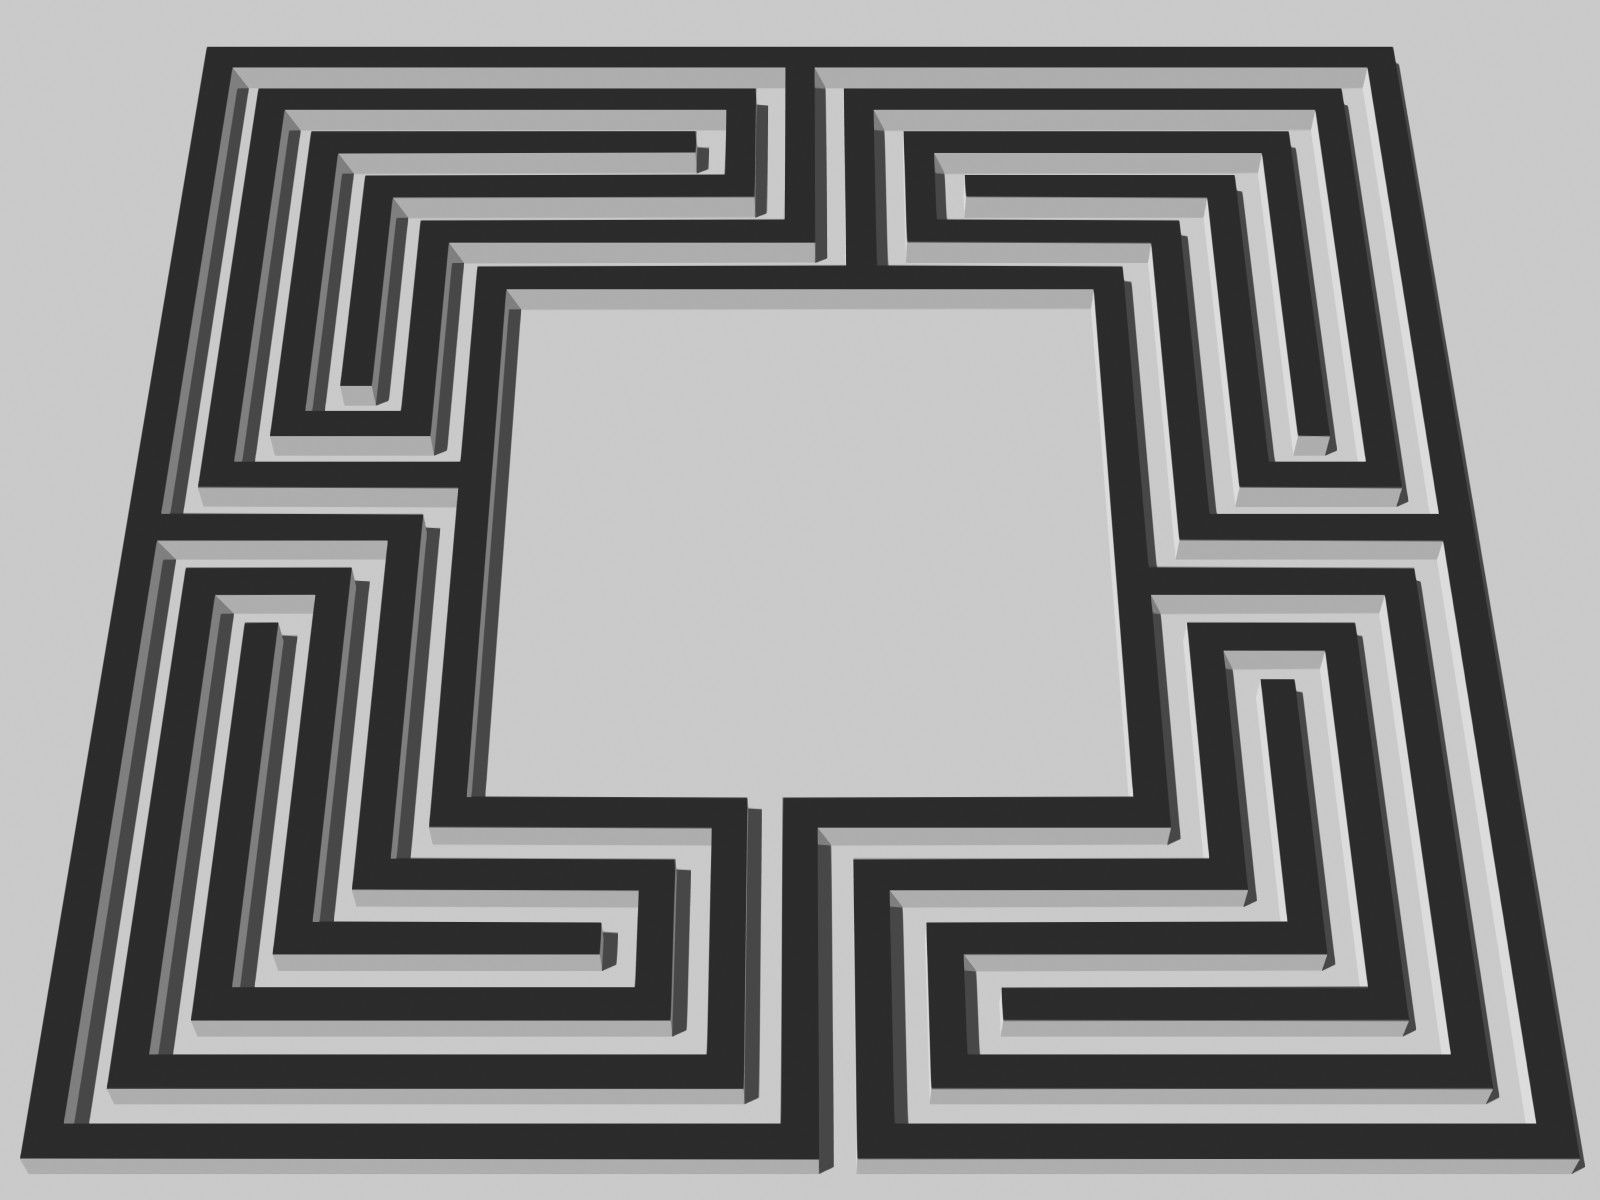 Labyrinth designs easy simple square labyrinth meditation labyrinth designs easy simple square labyrinth buycottarizona Image collections